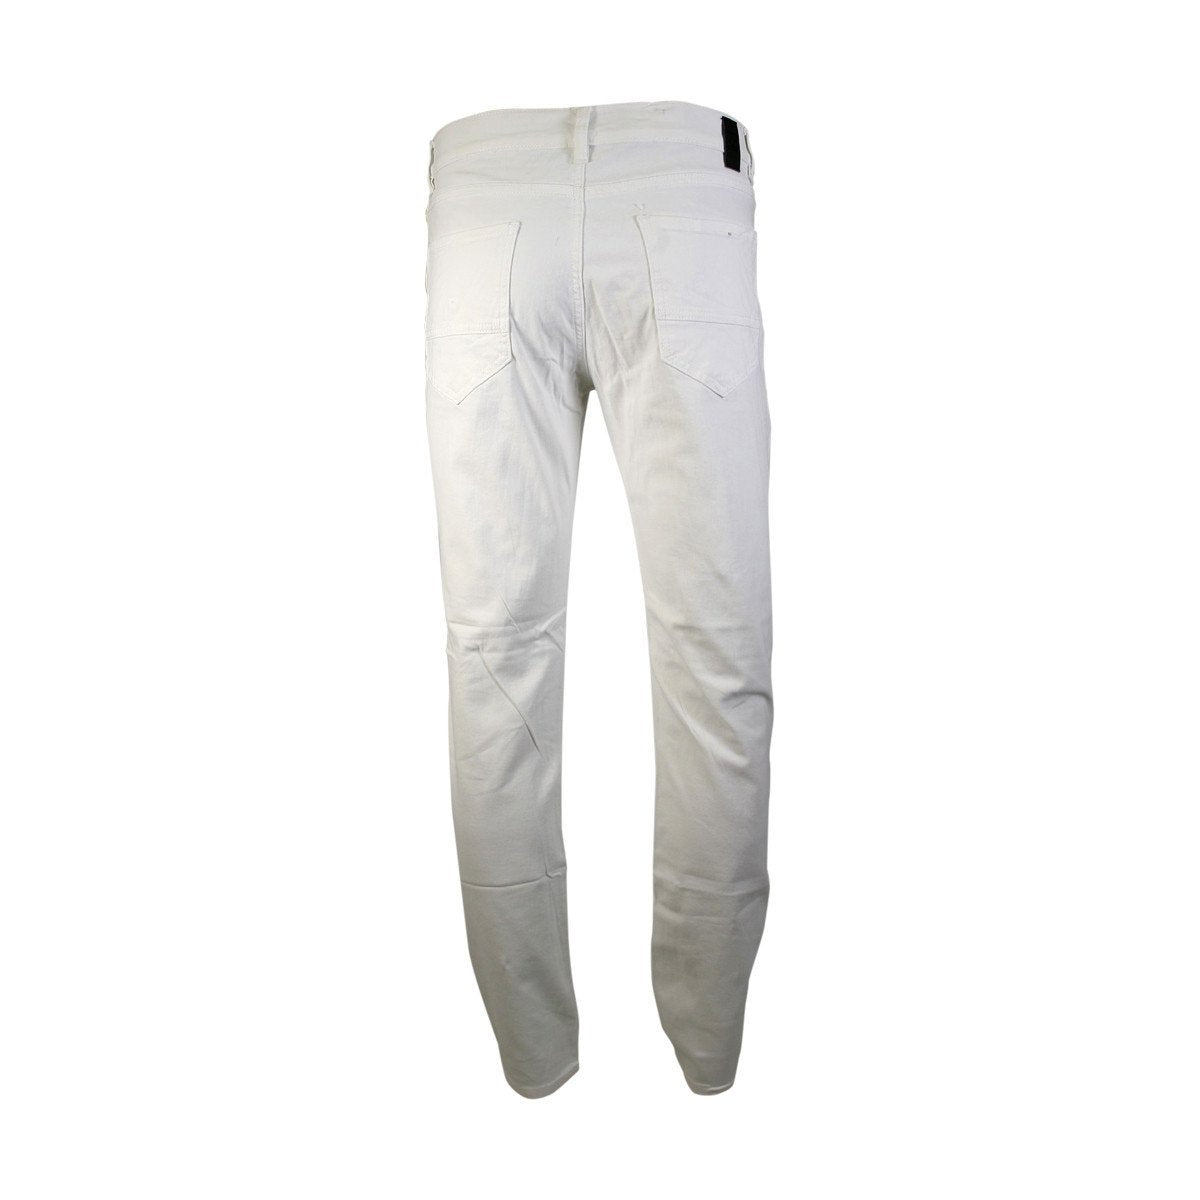 Azazel - Men's Twill Stretch Pants - White - V.I.M. - 2